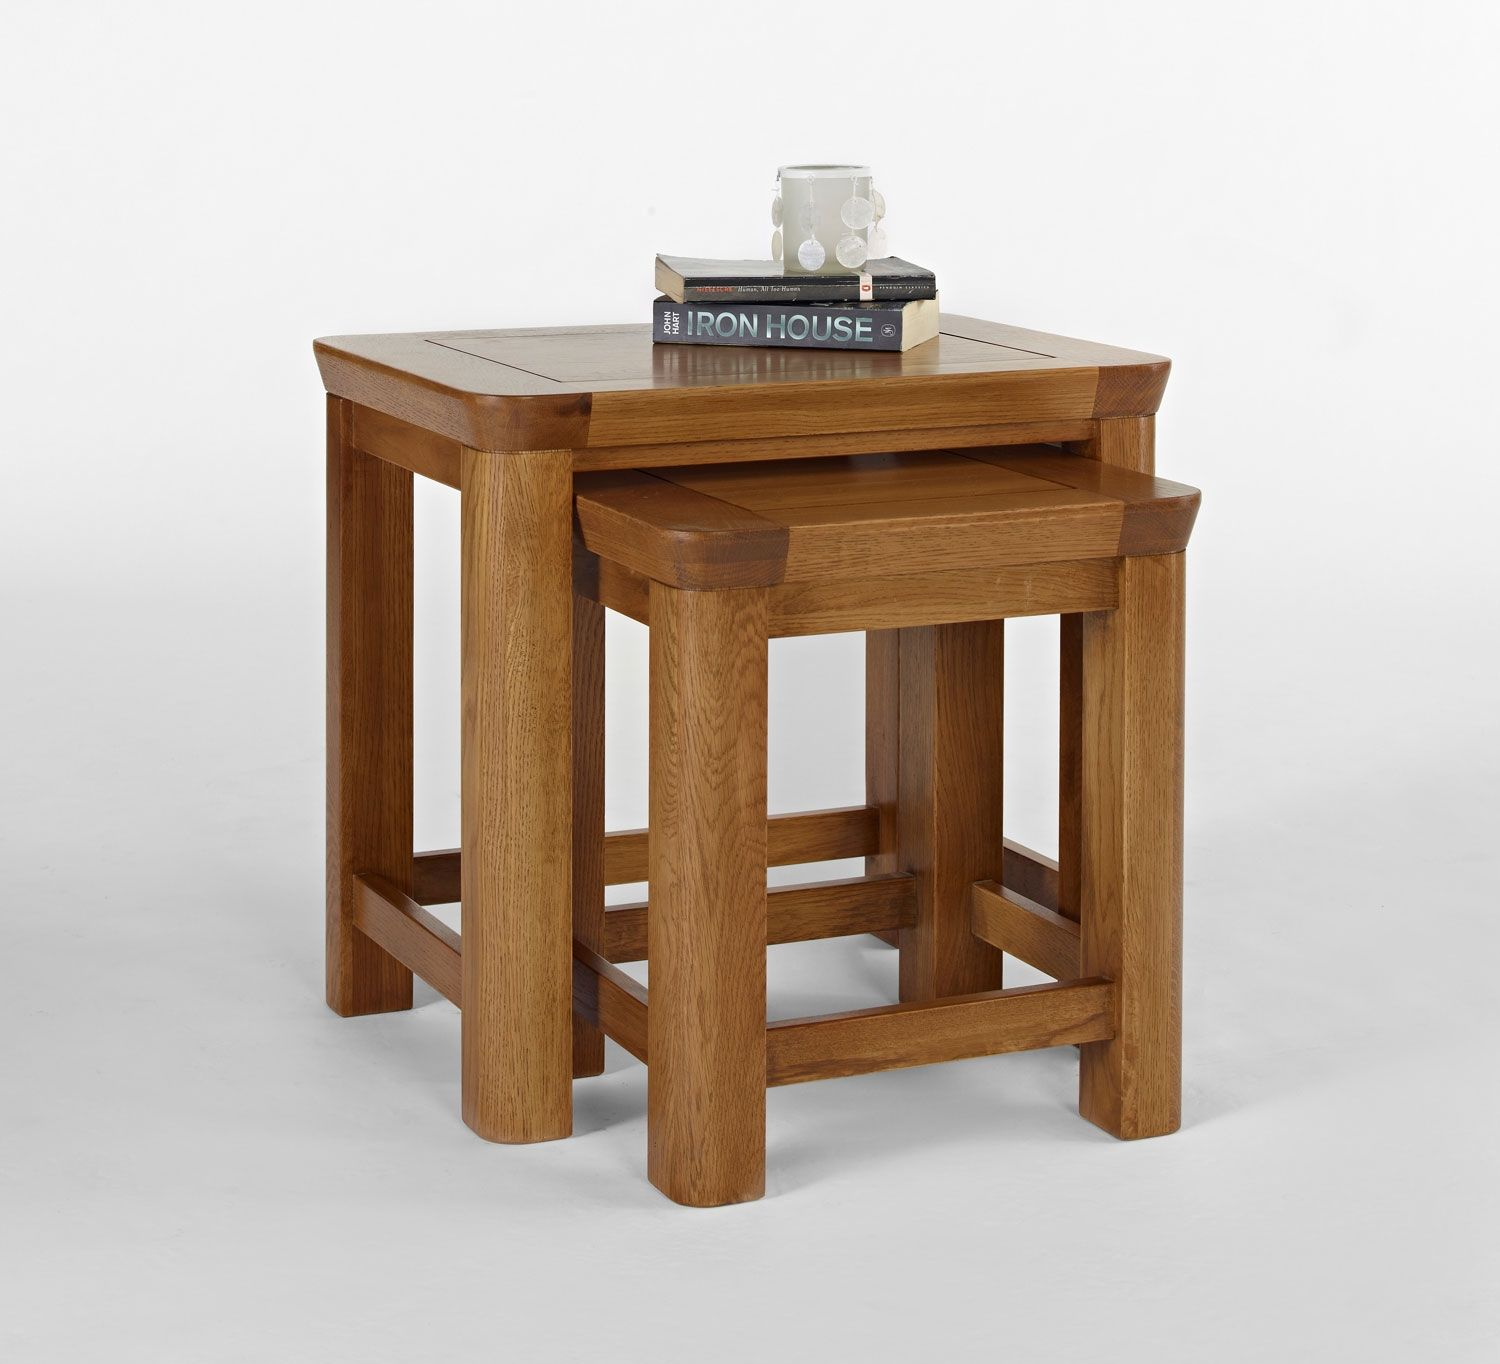 Knightsbridge oak nest of tables knightsbridge oak is a wonderfully knightsbridge oak nest of tables knightsbridge oak is a wonderfully mellow range crafted to exceptional watchthetrailerfo